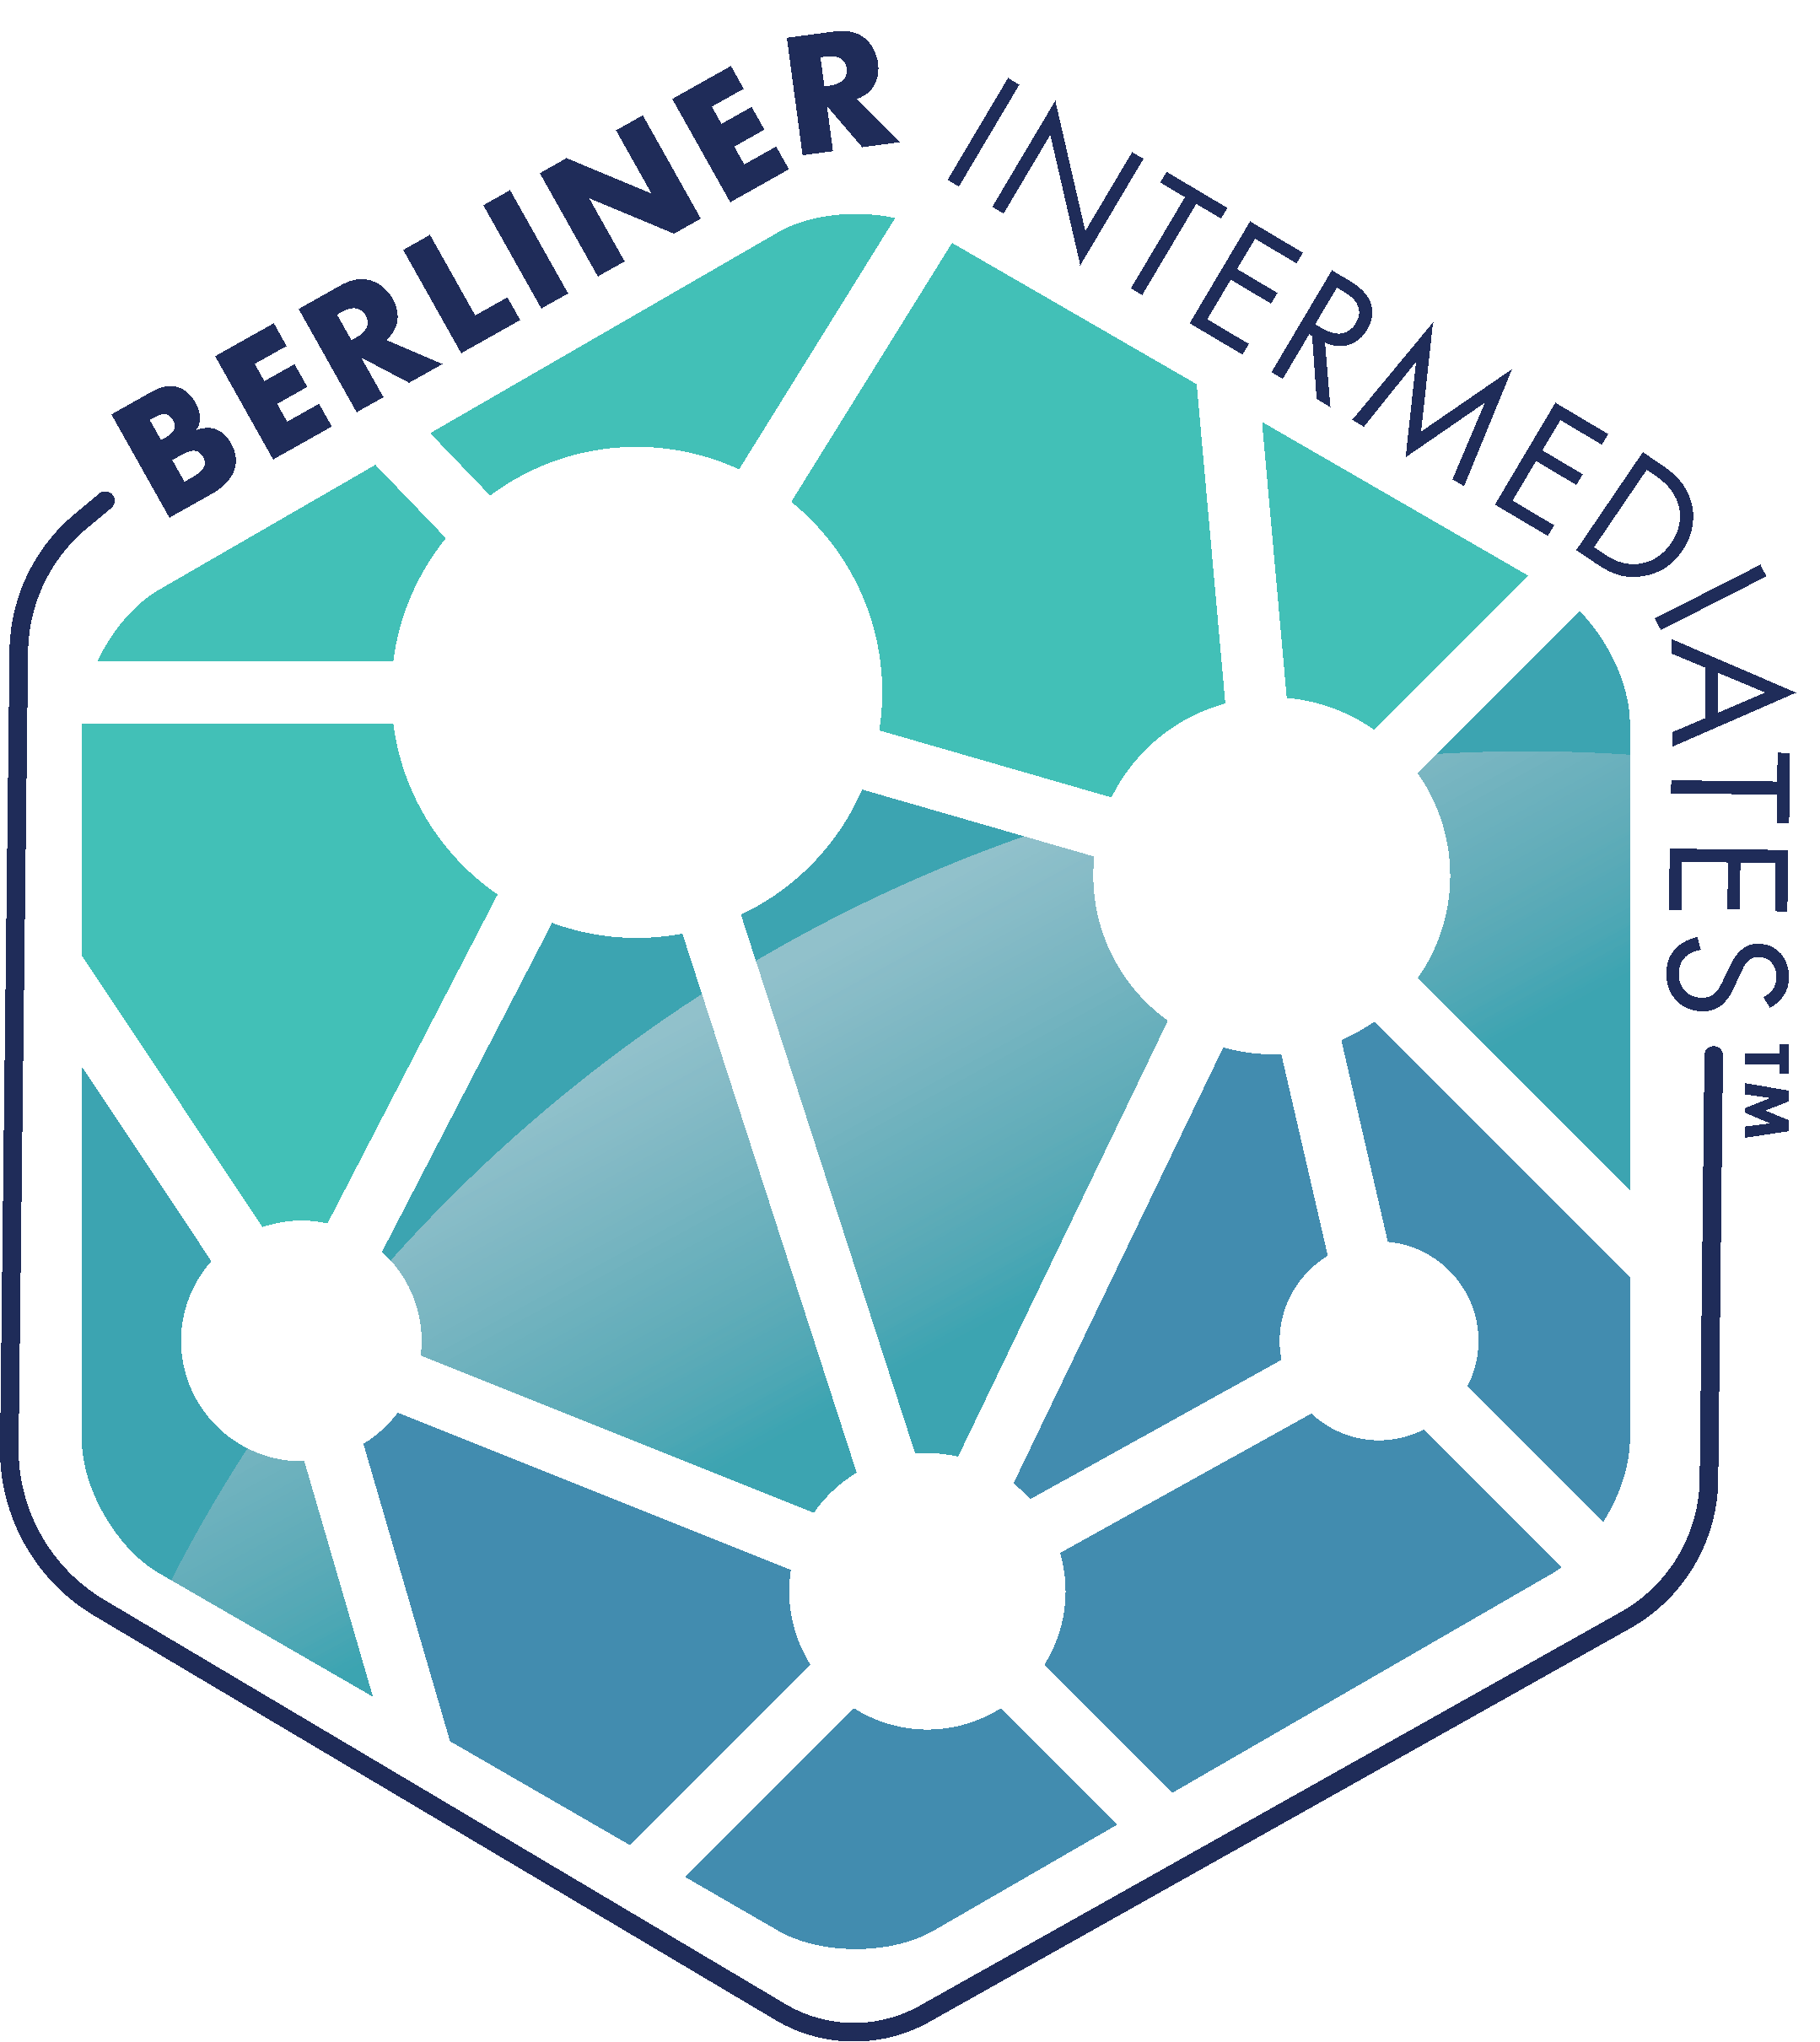 Berliner Intermediates